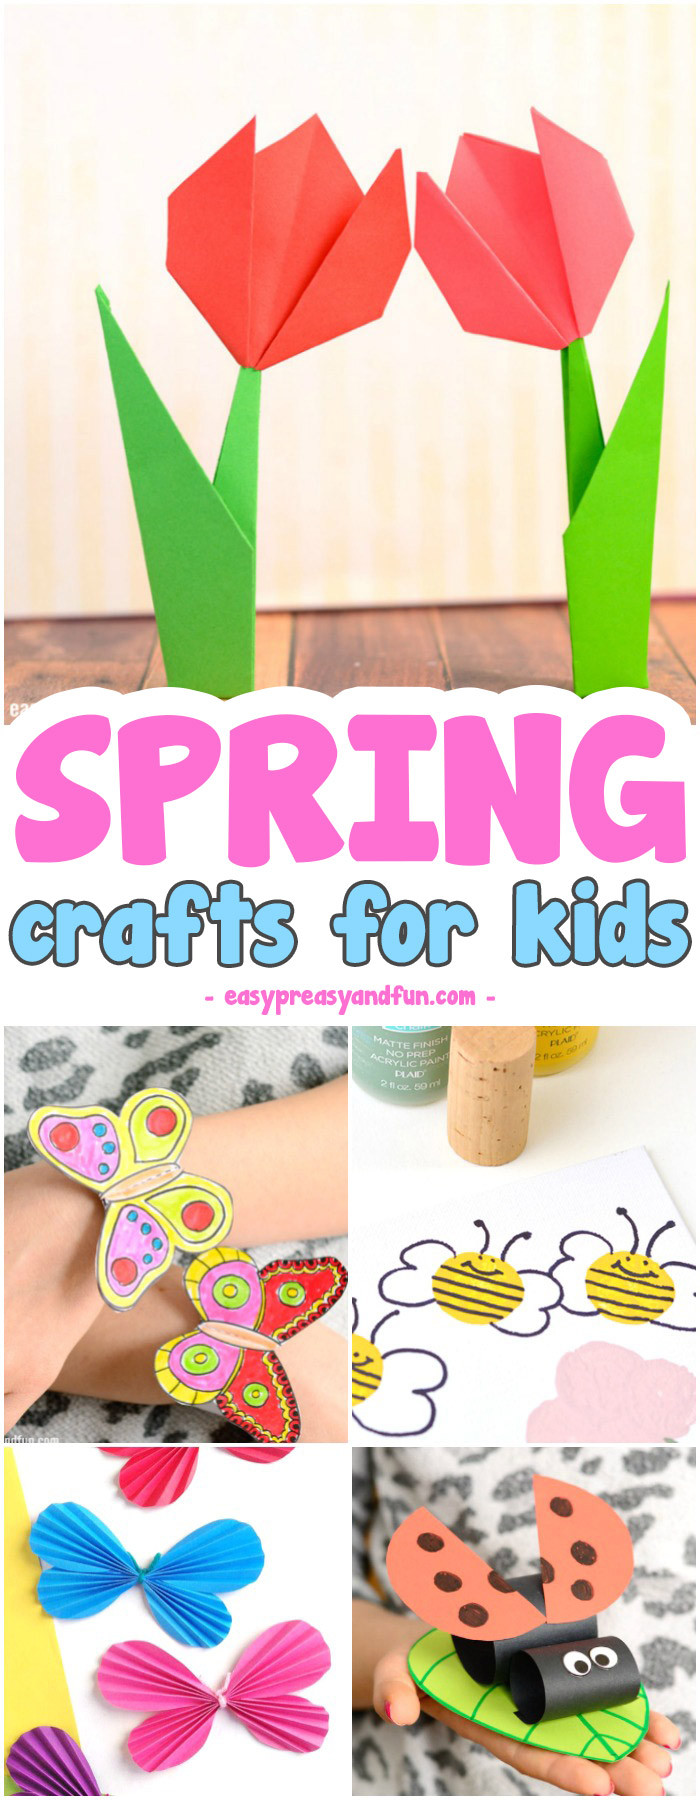 Best ideas about Craft Ideas Kids . Save or Pin Spring Crafts for Kids Art and Craft Project Ideas for Now.